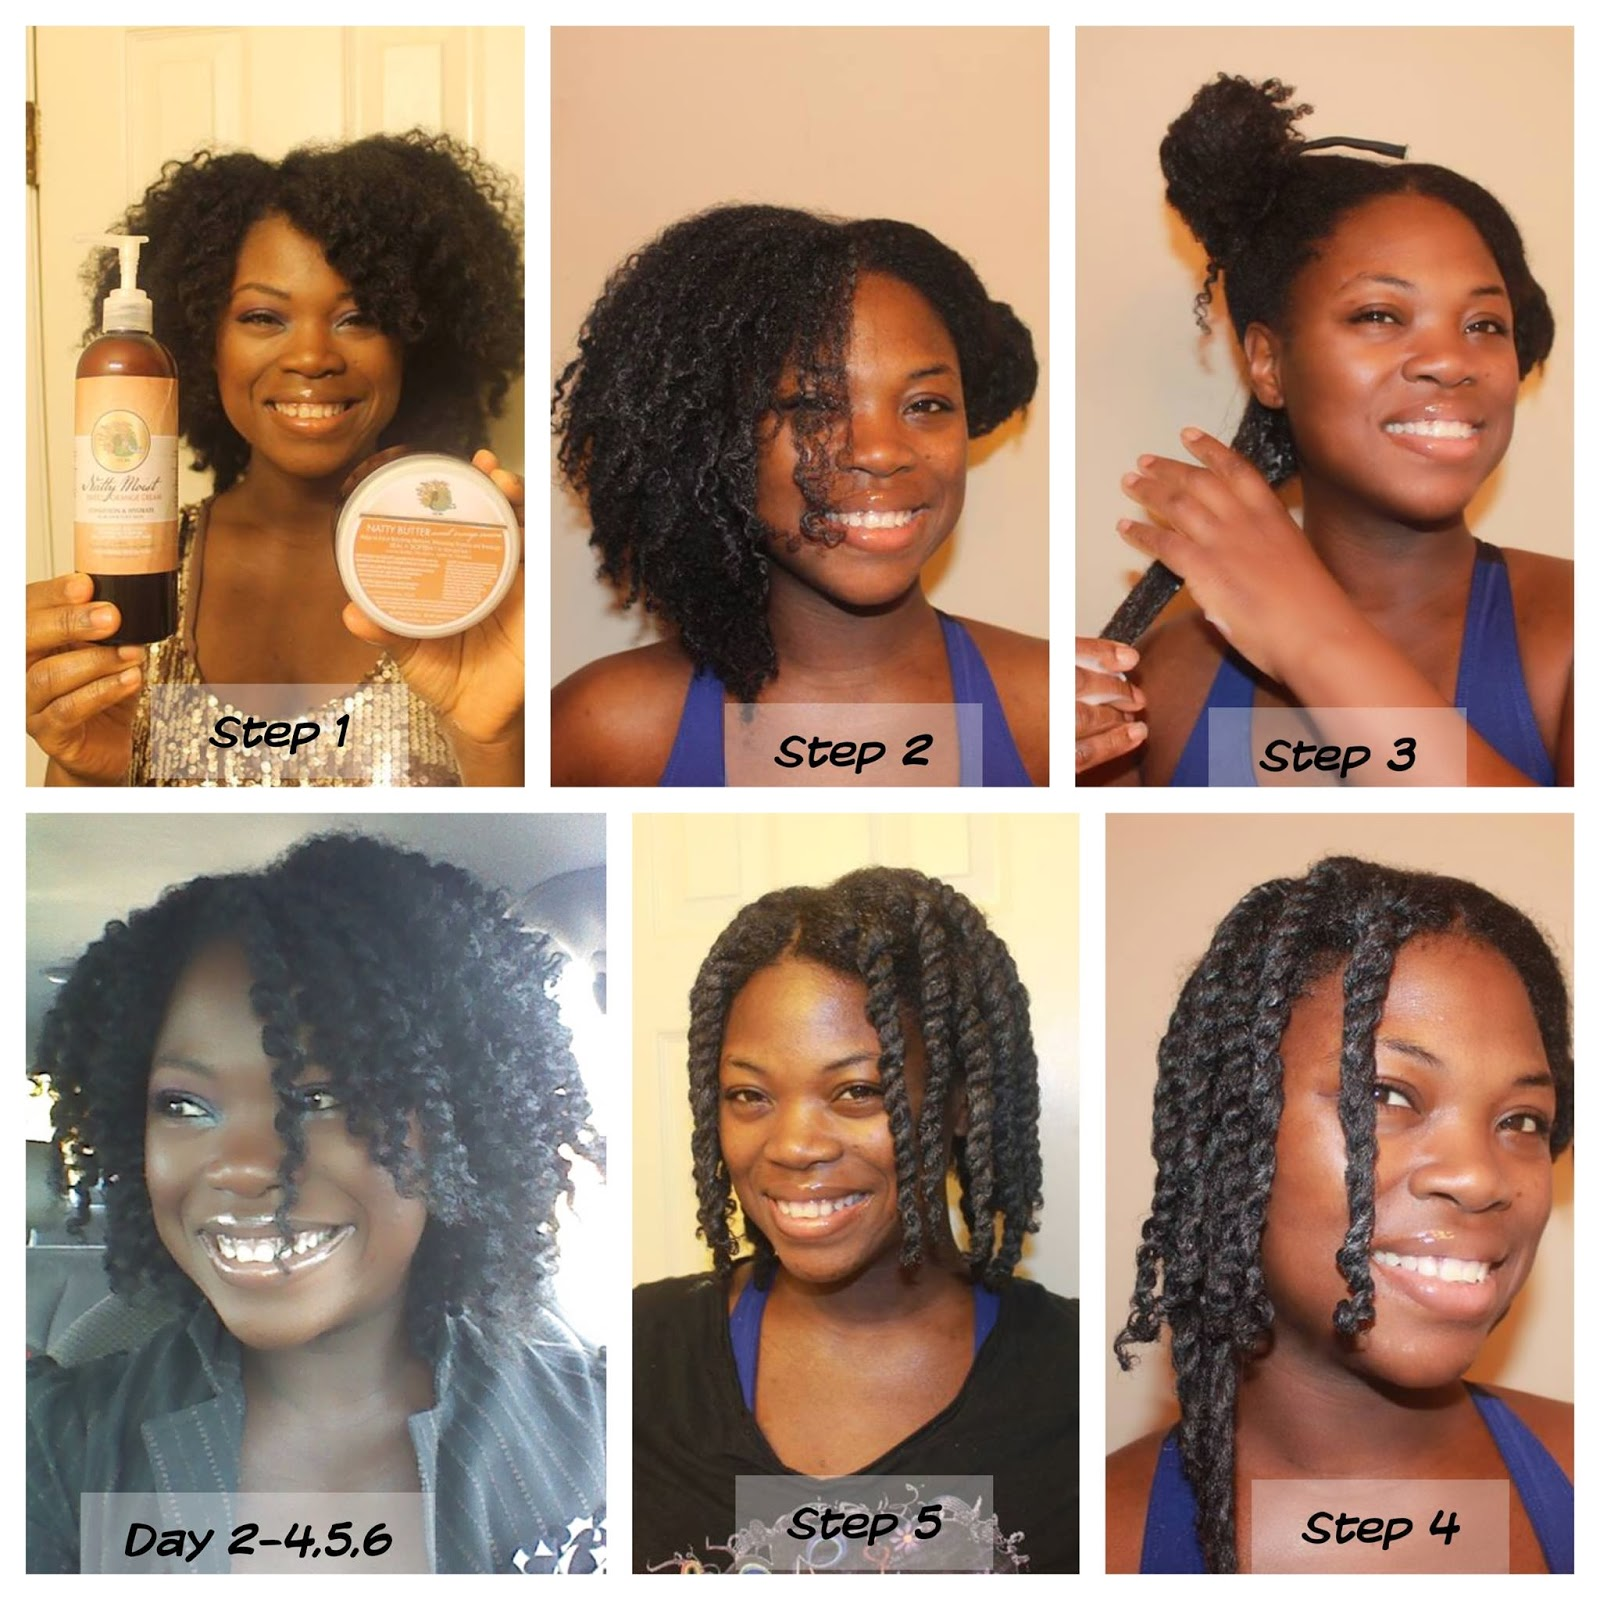 How to Battle Frizz in Natural Hair - BGLH Marketplace